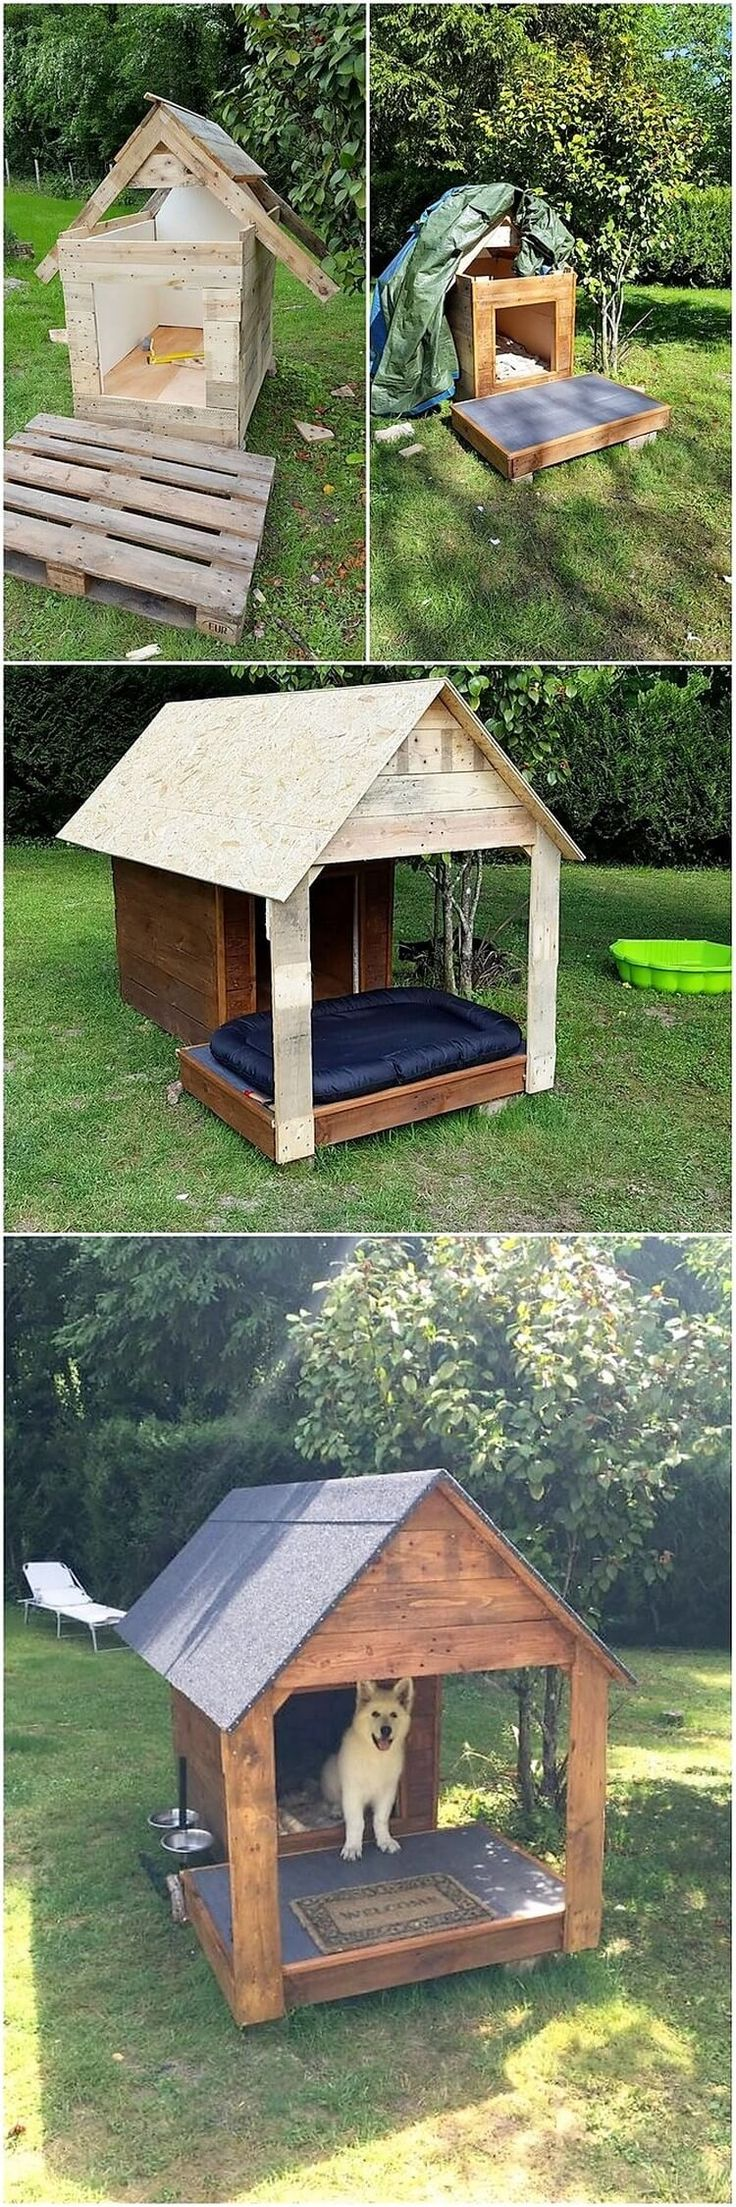 This wood pallet design is all shared with the perception of giving it the impact of pet house designing framework that is looking so much durable and sturdy. This pet house designing is simple and much artistic designed looking that would be a perfect option for your house outdoor areas sections.